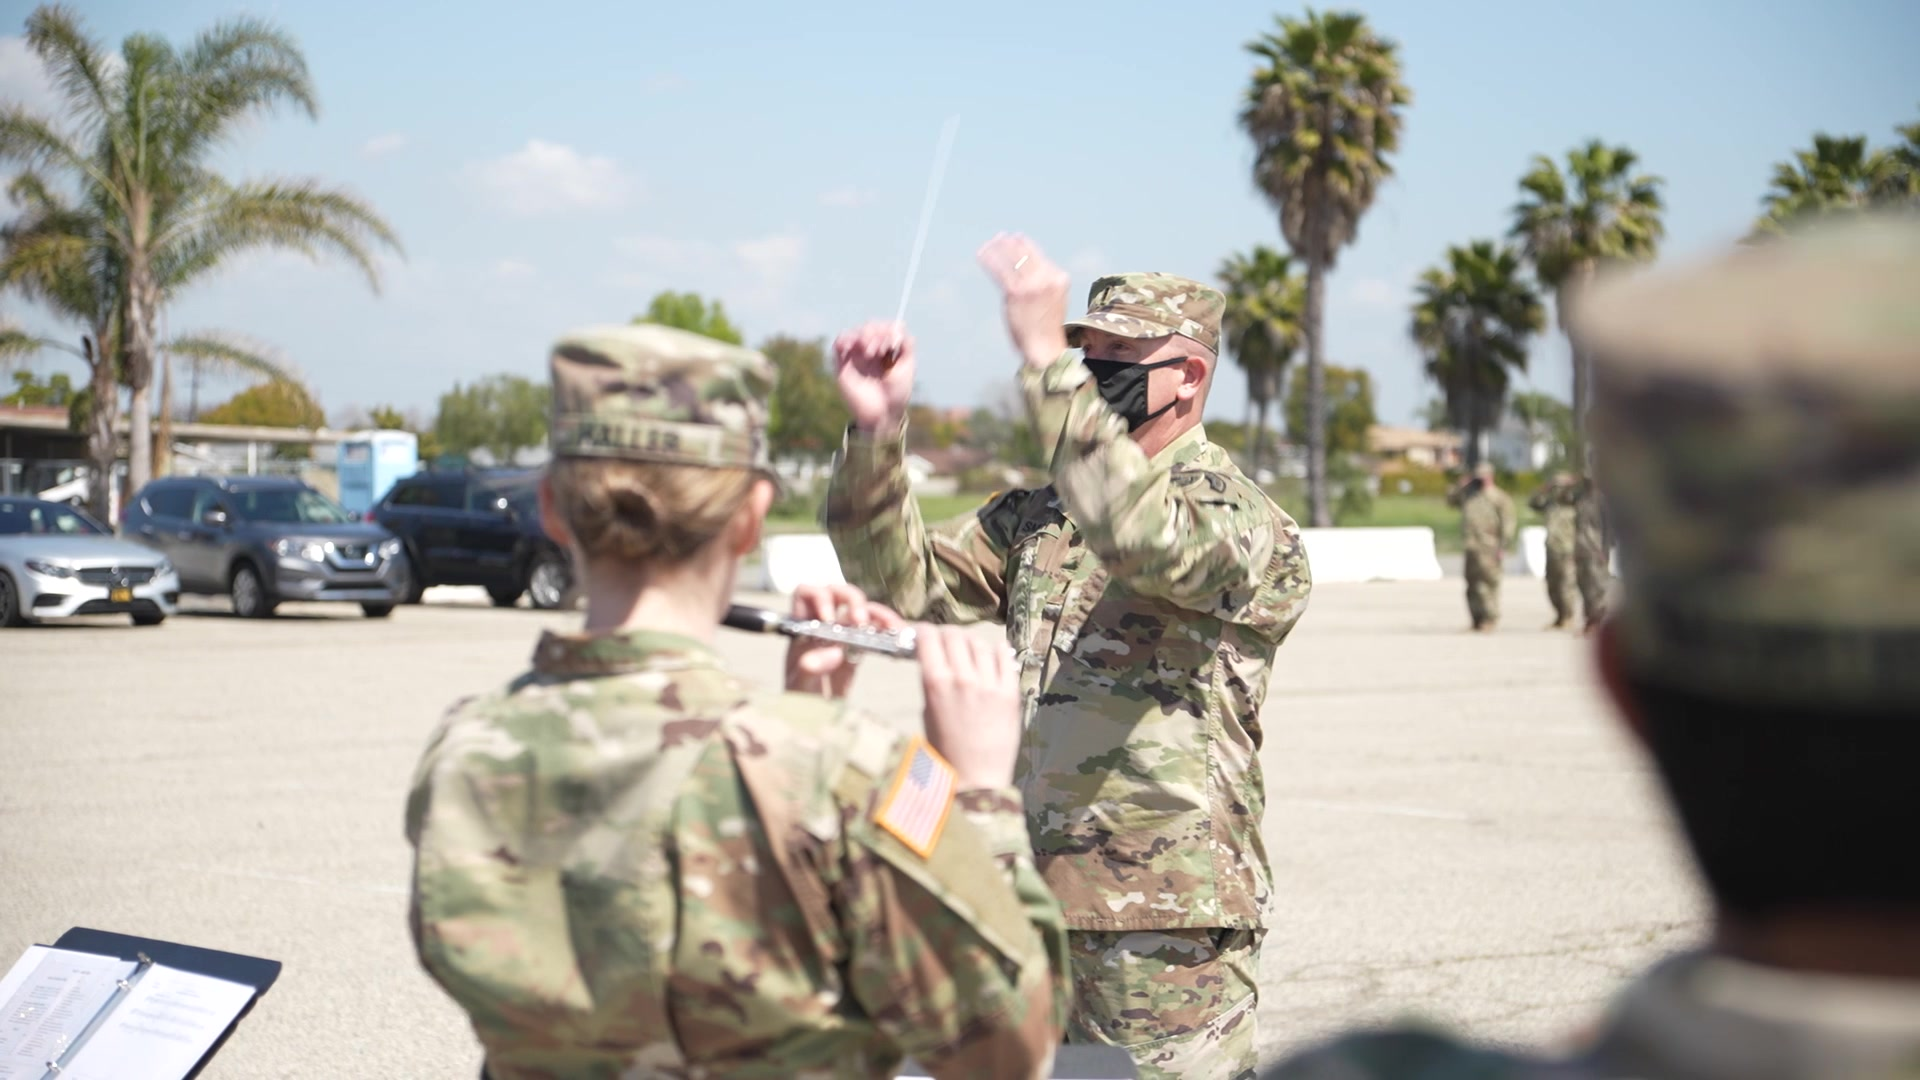 Soldiers from the 311th Expeditionary Sustainment Command attend their uncasing ceremony on Joint Forces Training Base in Los Alamitos, CA, which commemorates their recent deployment to the Middle East.